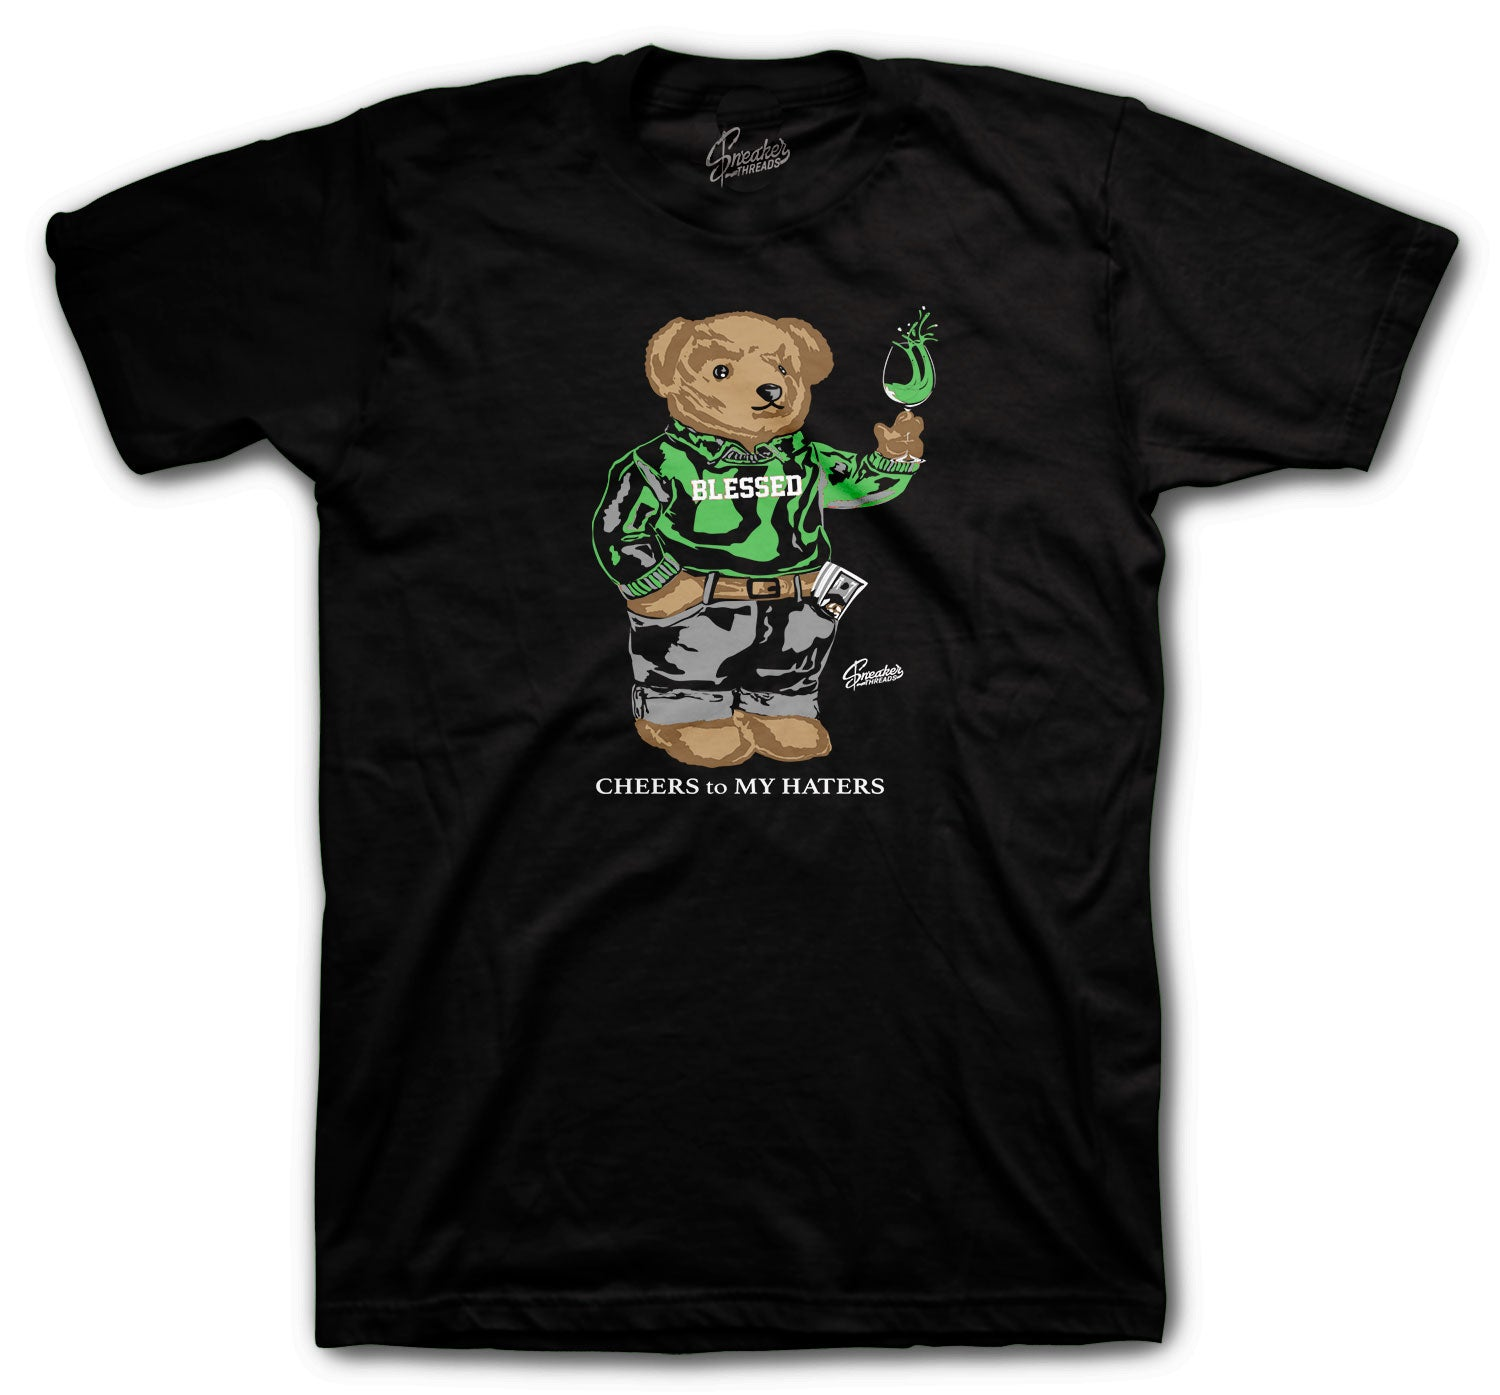 Jordan 1 Zen Green Cheers Bear Shirt